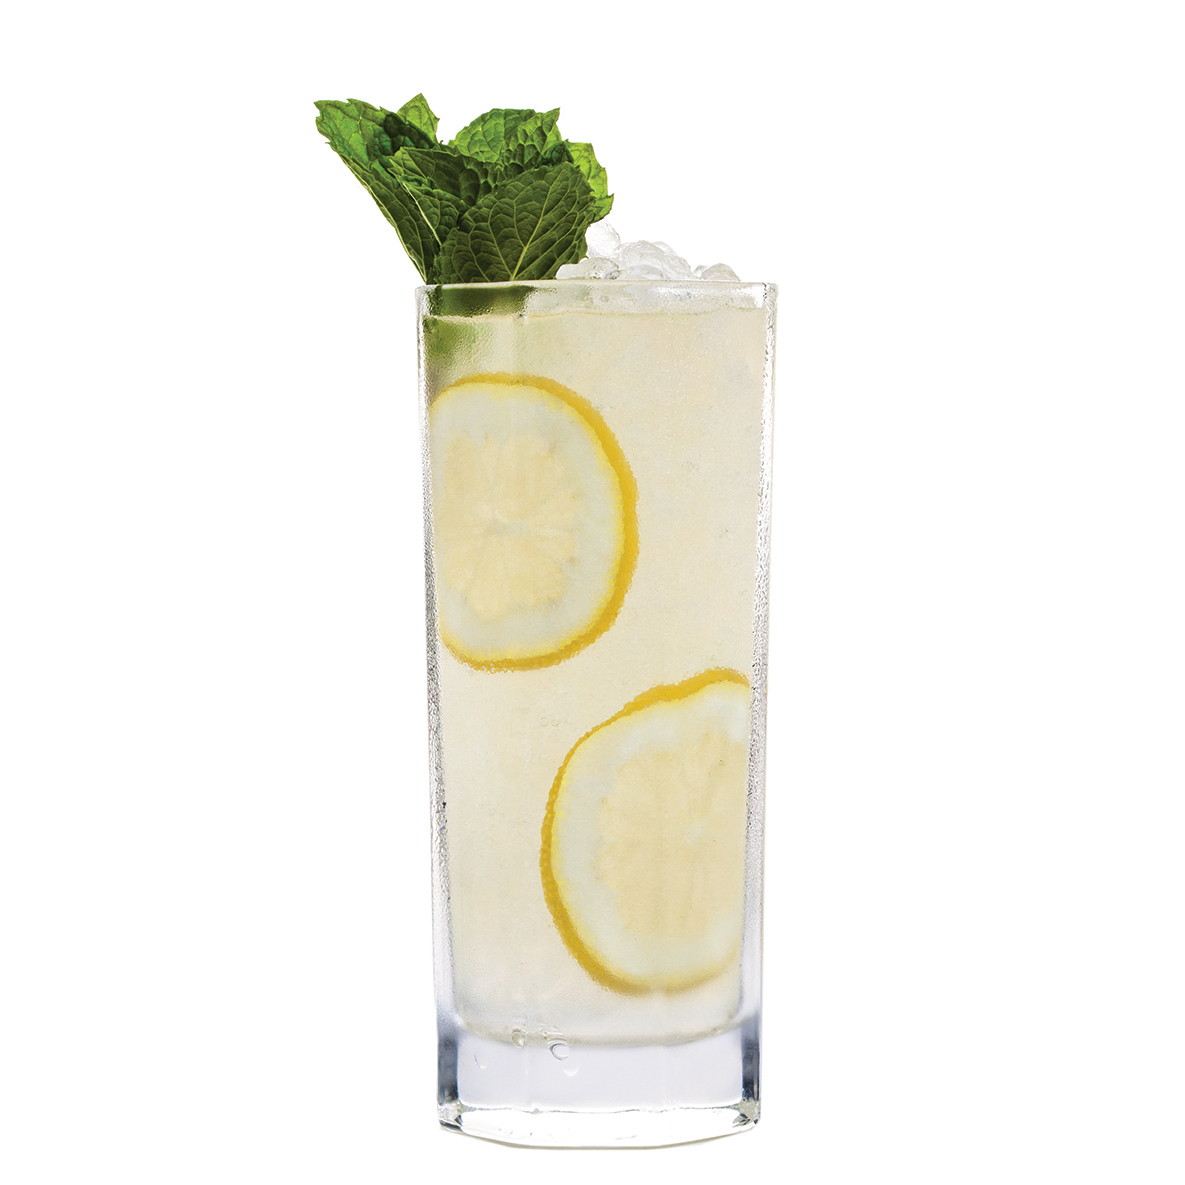 EL CHICLE (cheek-lay) - 2 parts KLEOS Mastiha Spirit1⁄2 part fresh lemon juice1⁄4 part simple syrup7 mint leavesShake all ingredients vigorously.Strain over fresh crushed ice in a highball. Garnish with a lemon wheel & mint sprig.                                       Mastiha was the world's first chewing gum, so we baptized this Greek riff on the mojito en espanol, and it tastes kinda like Wrigley's Spearmint gum.